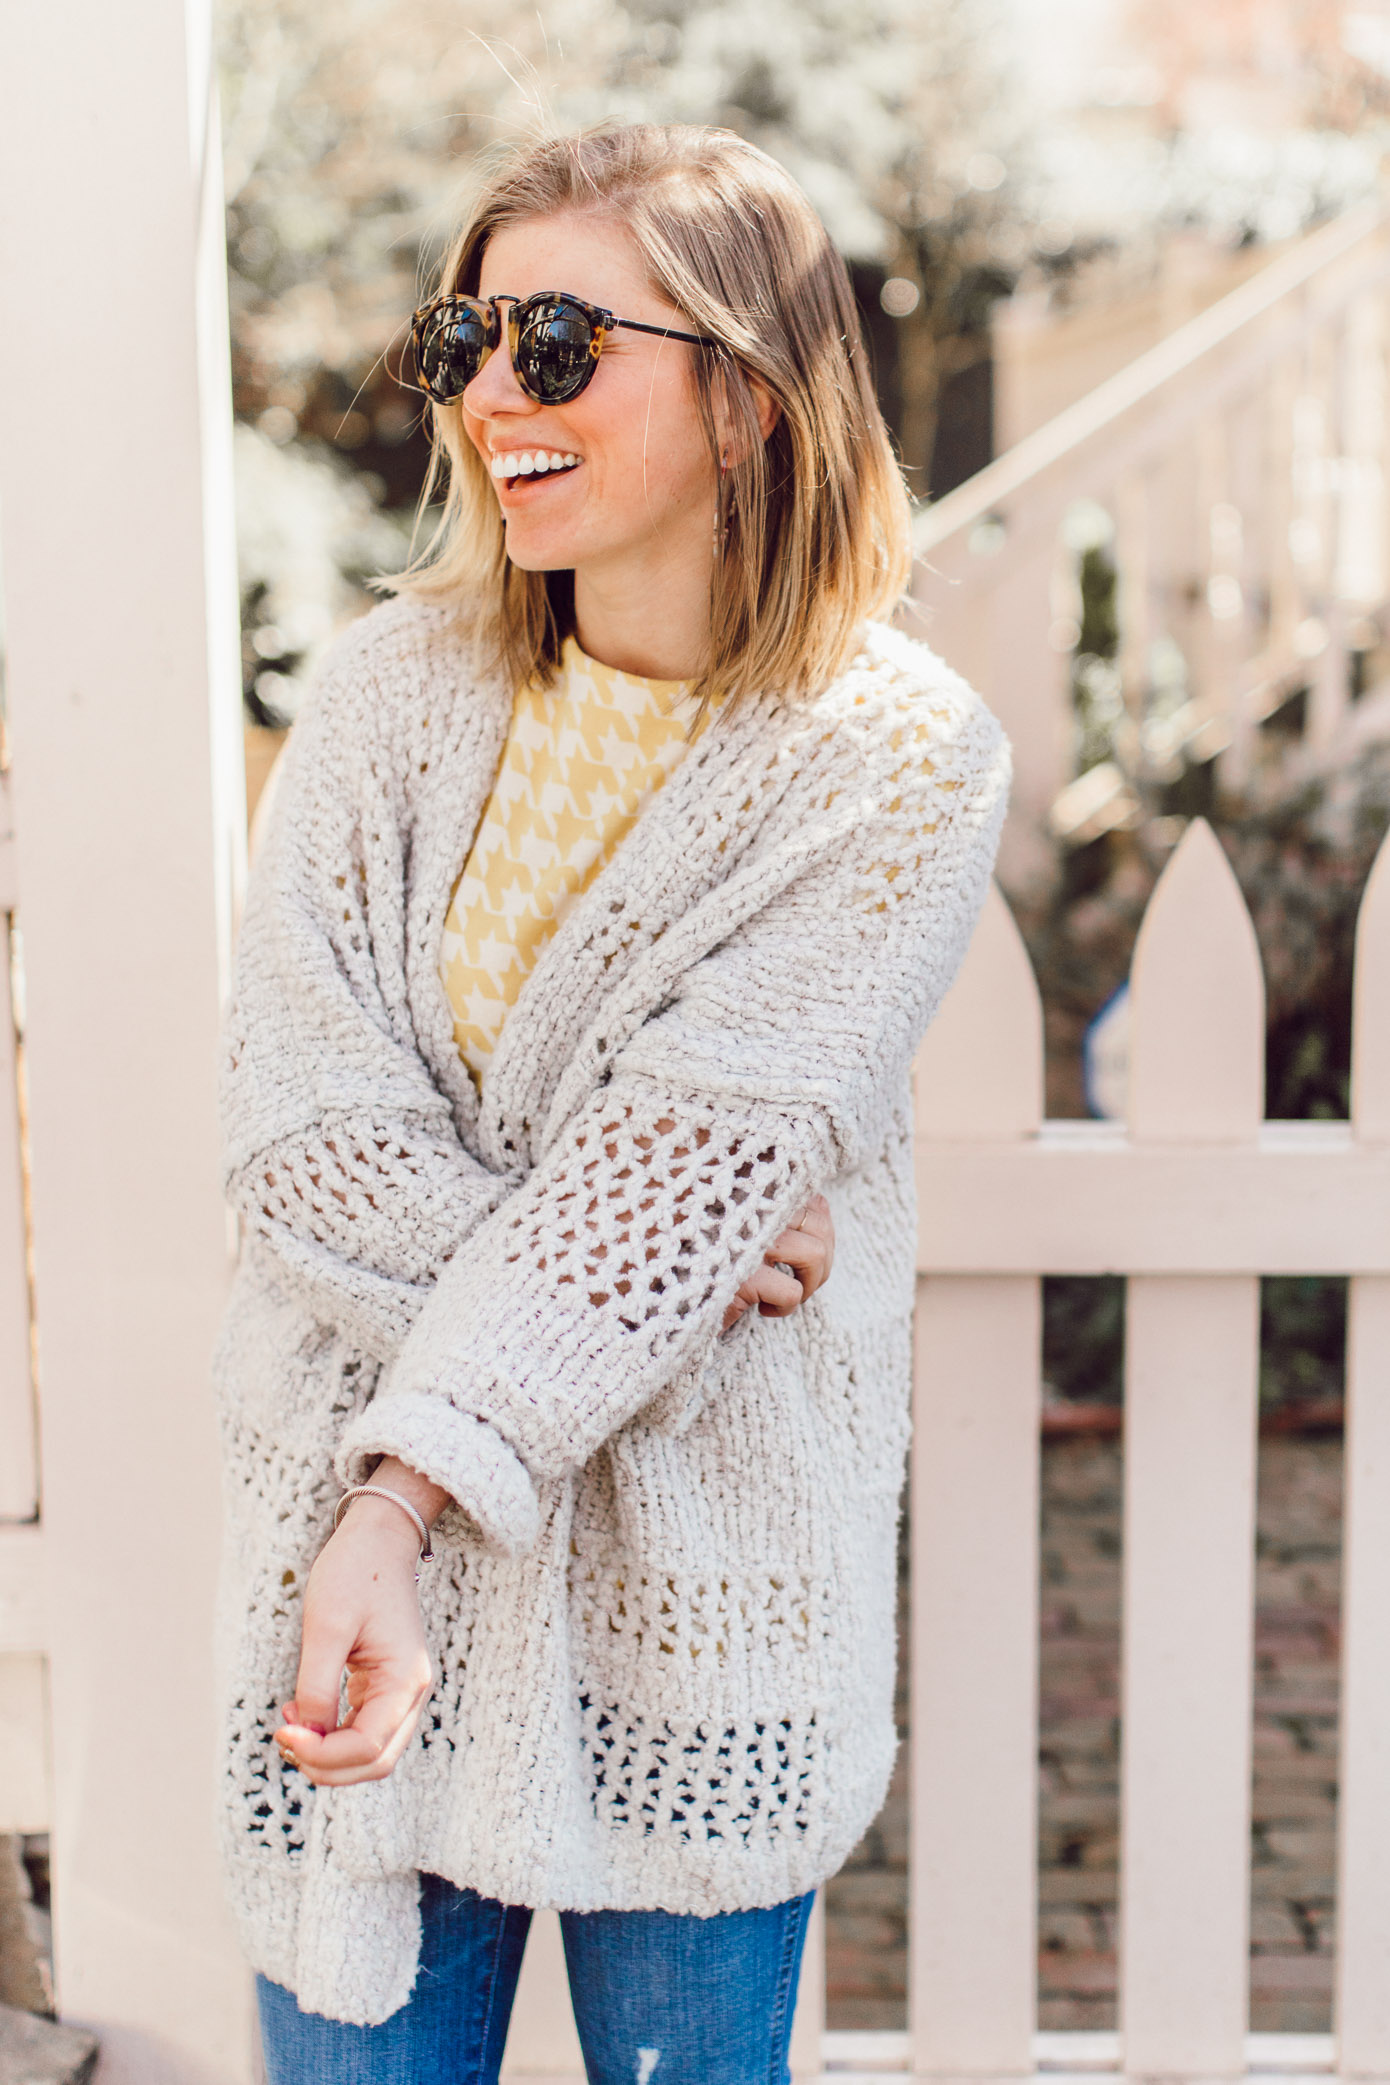 Spring 2019 Trend: Yellow | Yellow Jacquard Top, Crochet Sweater, High-rise Skinny Jeans, Karen Walker Harvest Sunglasses styled on Louella Reese